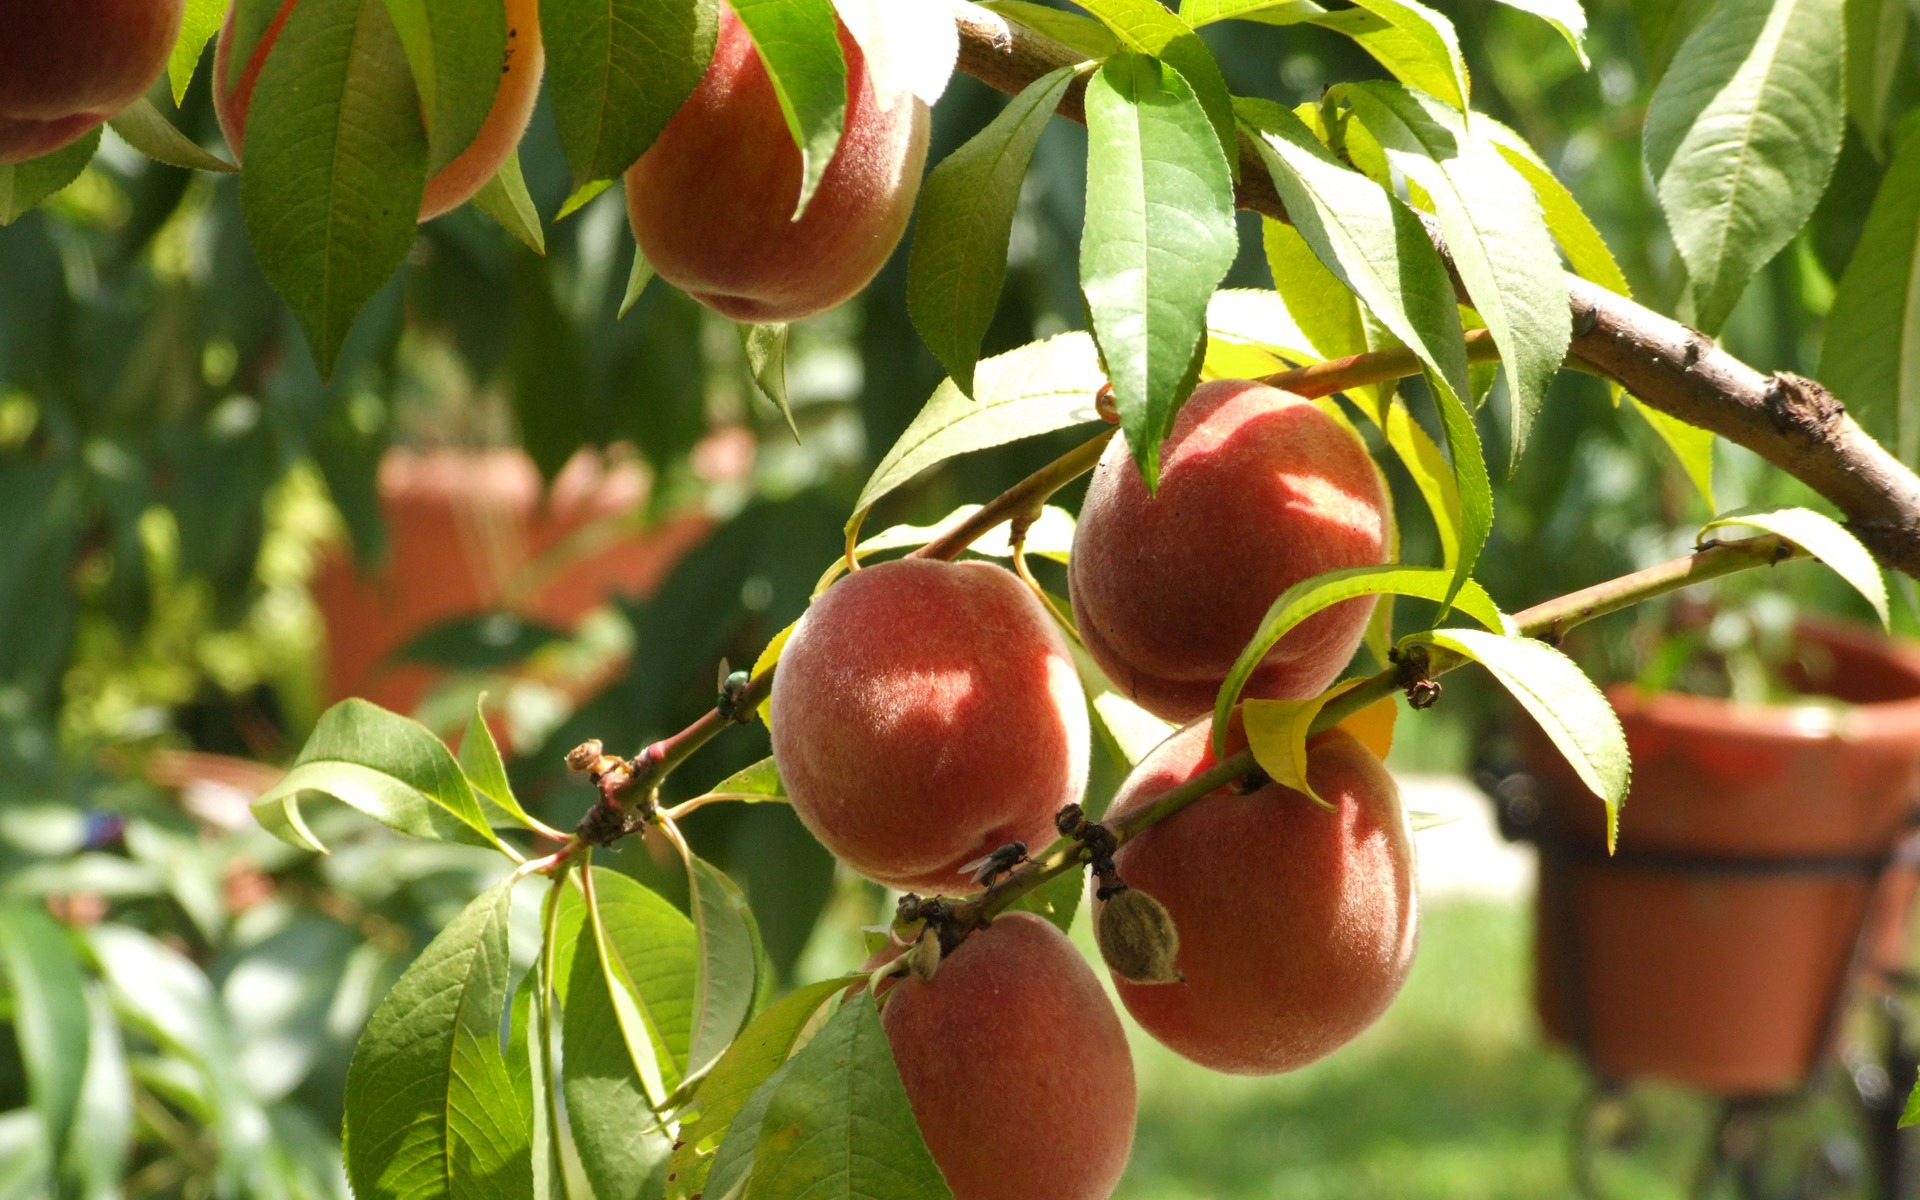 Peaches Wallpaper Fruits Nature Wallpapers In Jpg Format For Free Download